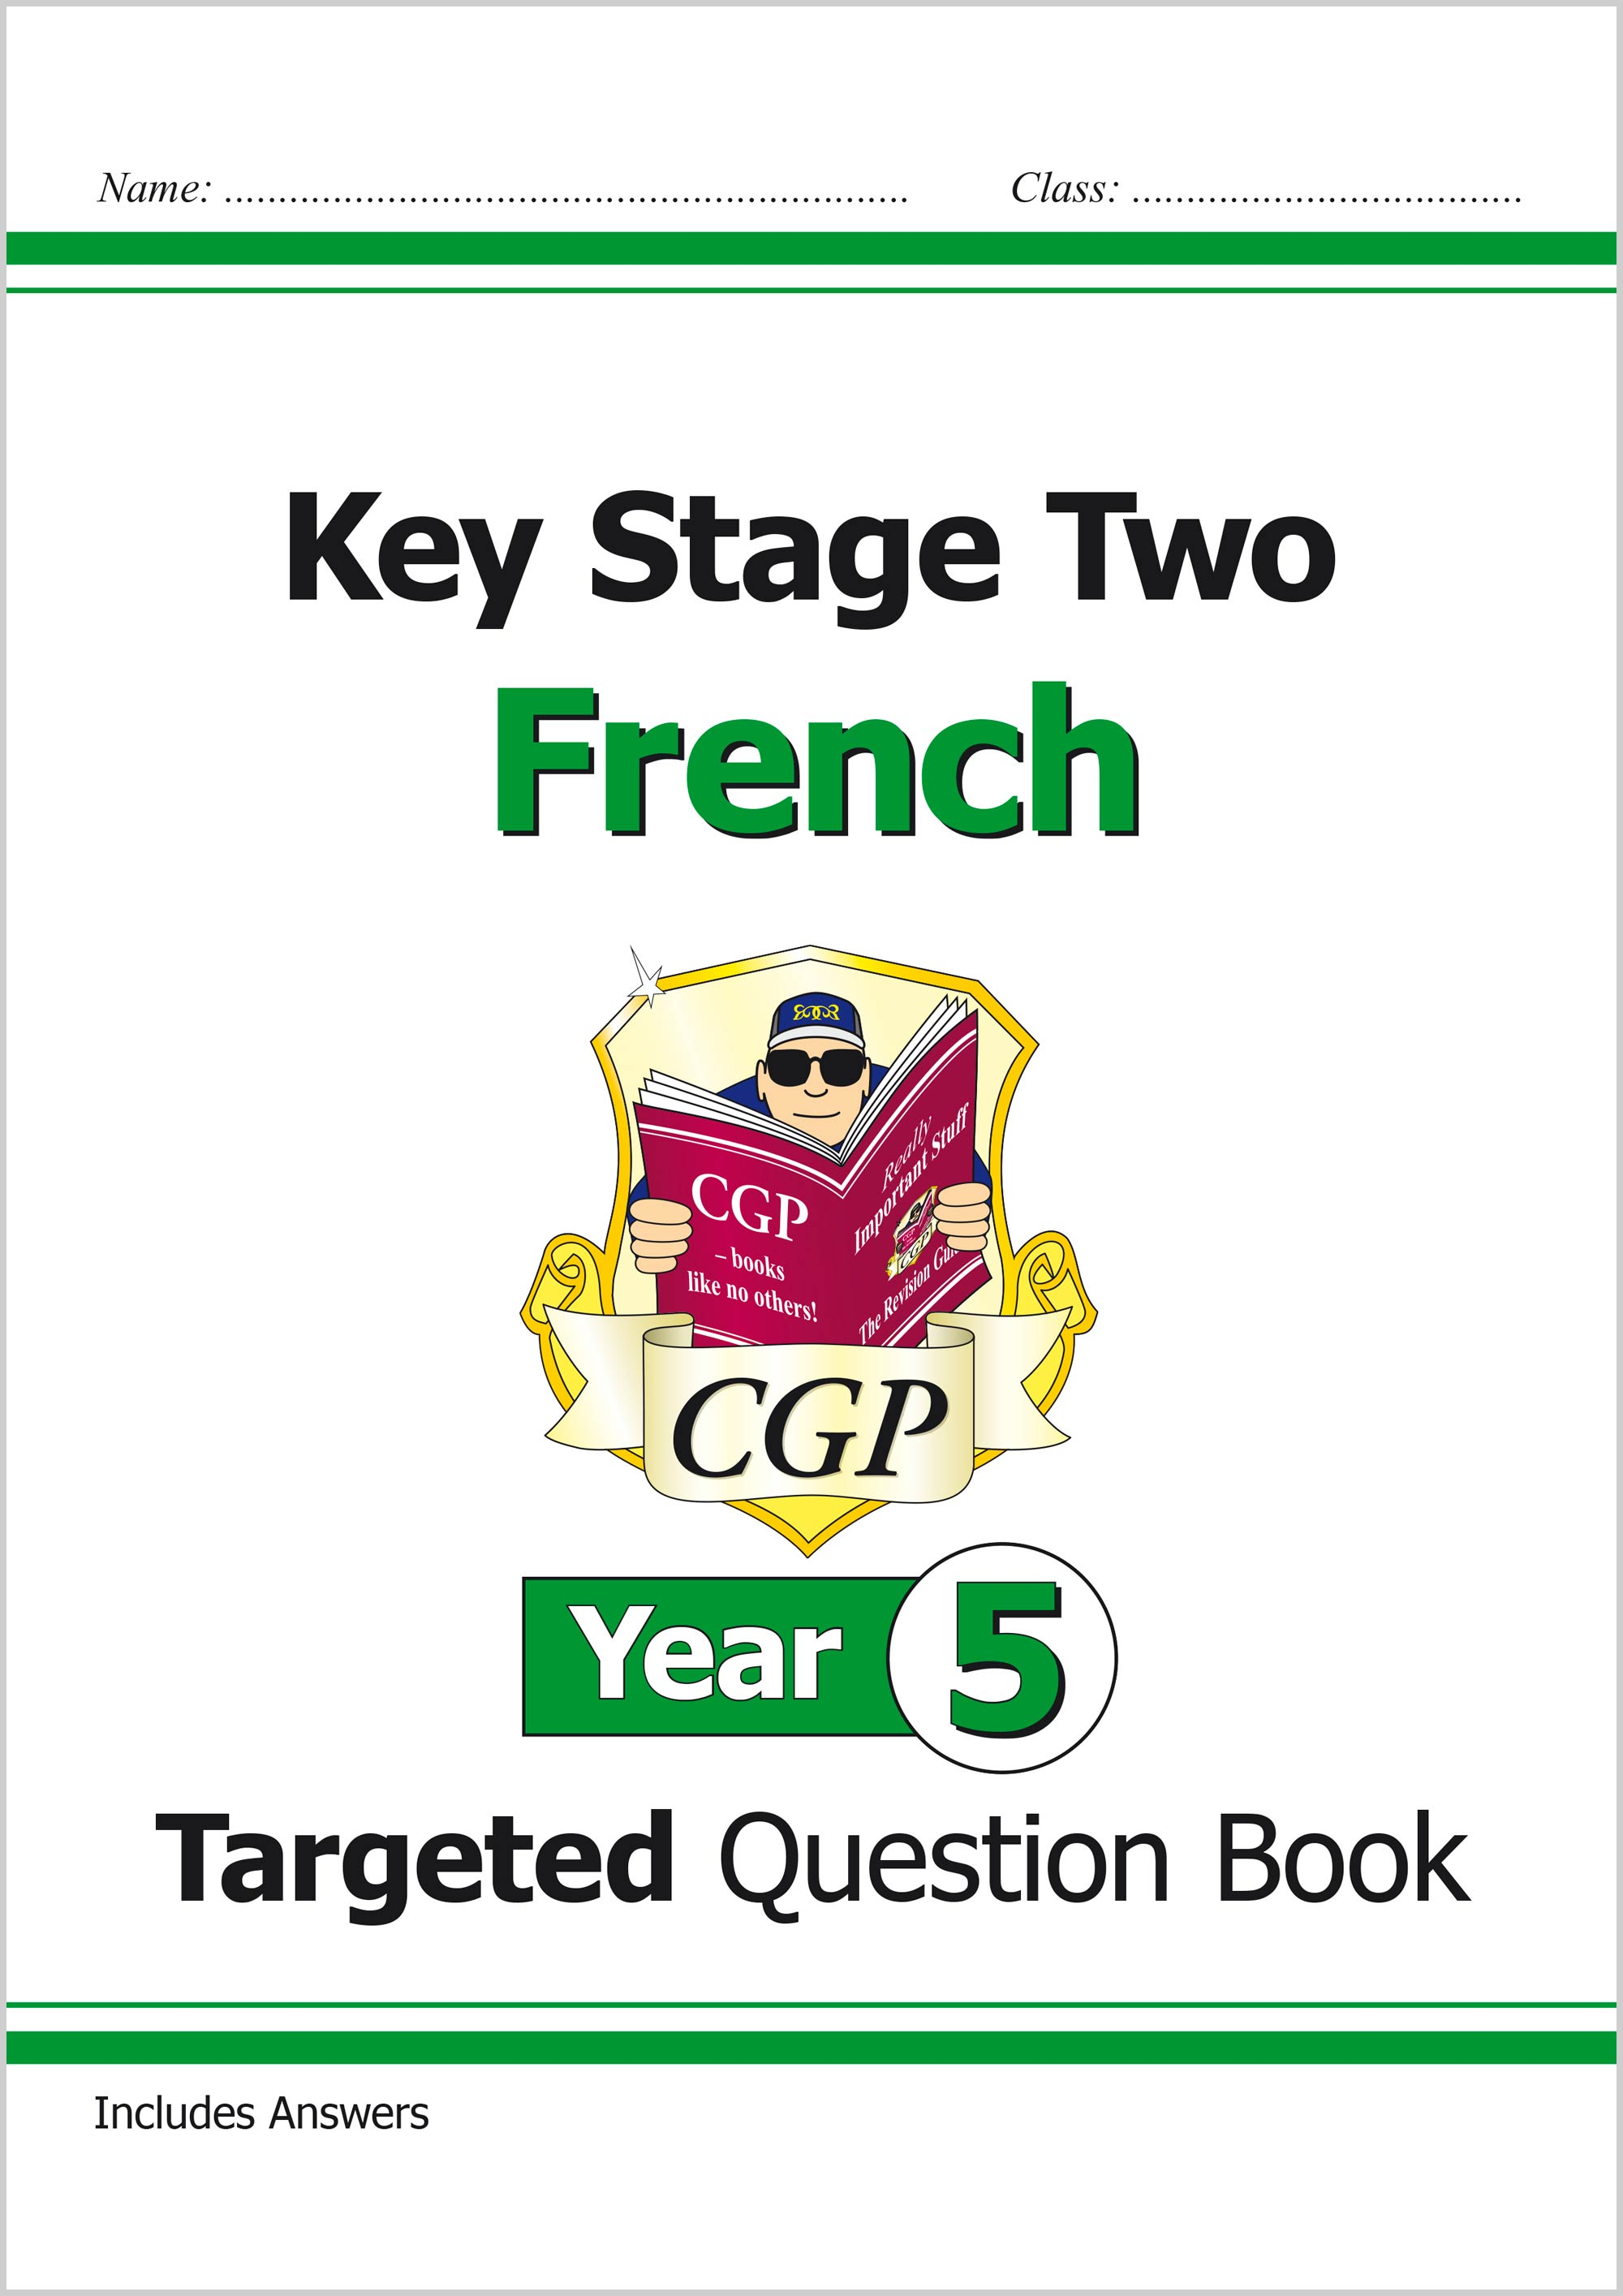 F5Q21 - New KS2 French Targeted Question Book - Year 5